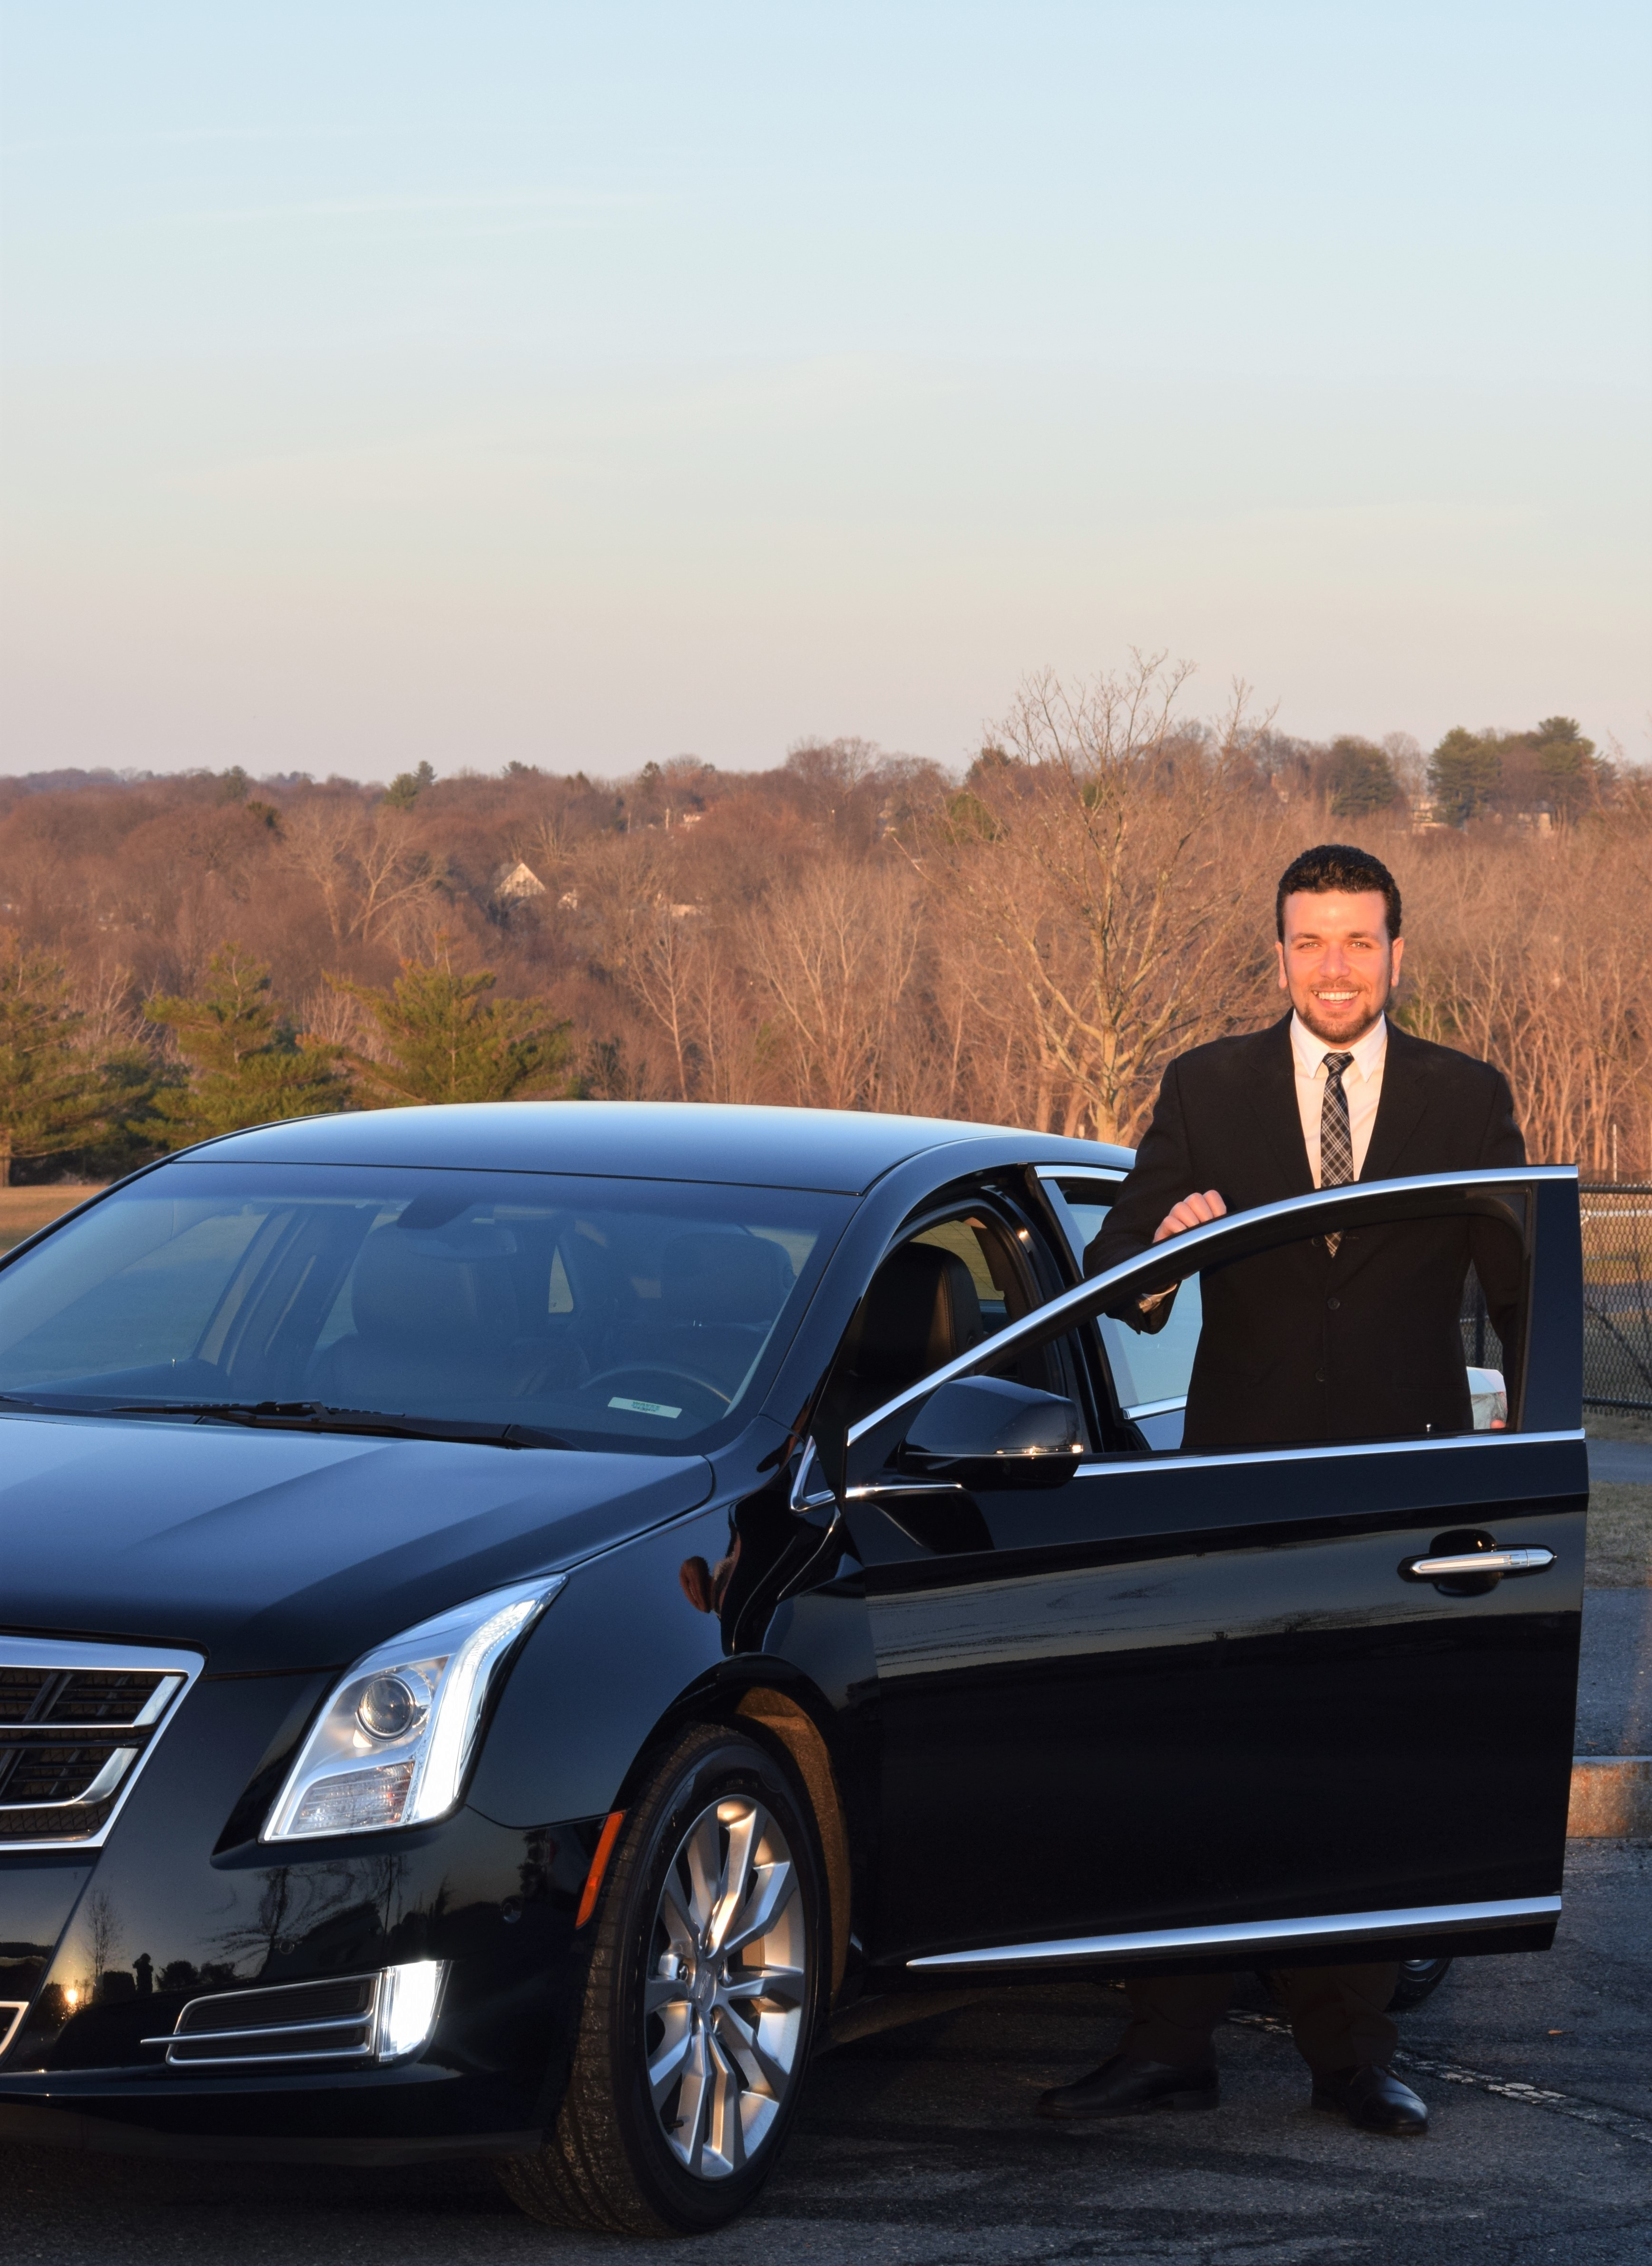 cadillac_car_black_airport_boston_logan_limo_transportation_corporate_tfgreen_newton_wellesley_weston_luxury_account